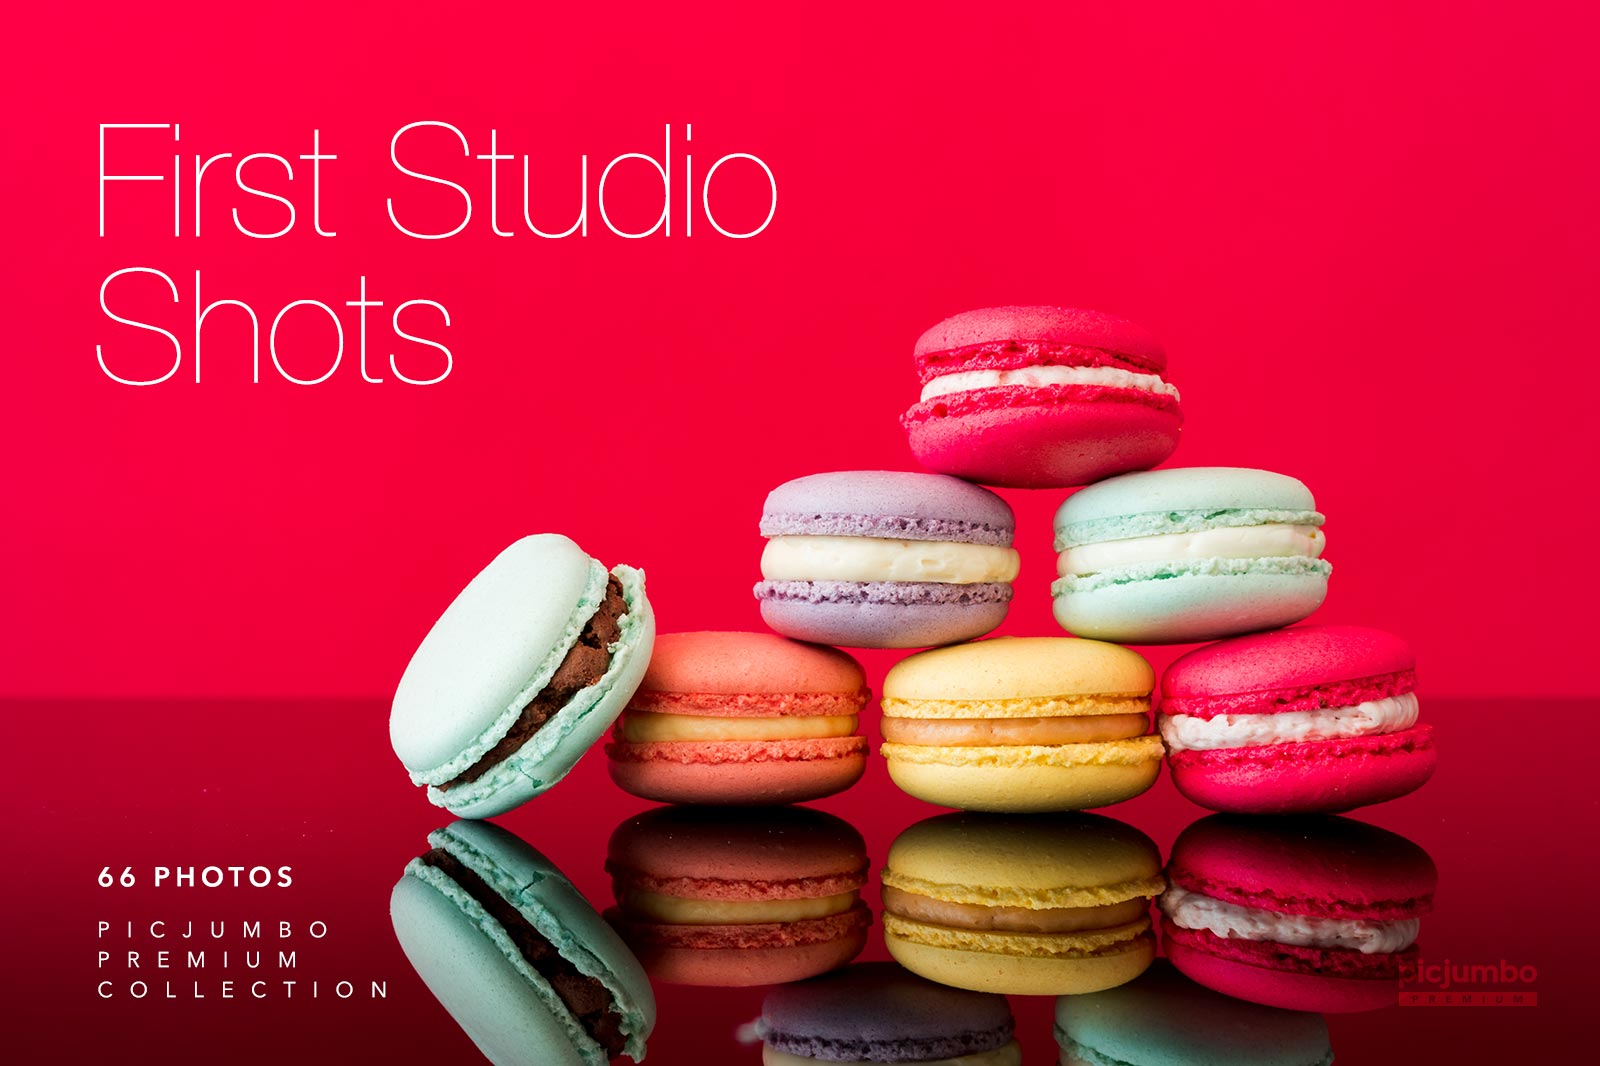 First Studio Shots — Join PREMIUM and get instant access to this collection!